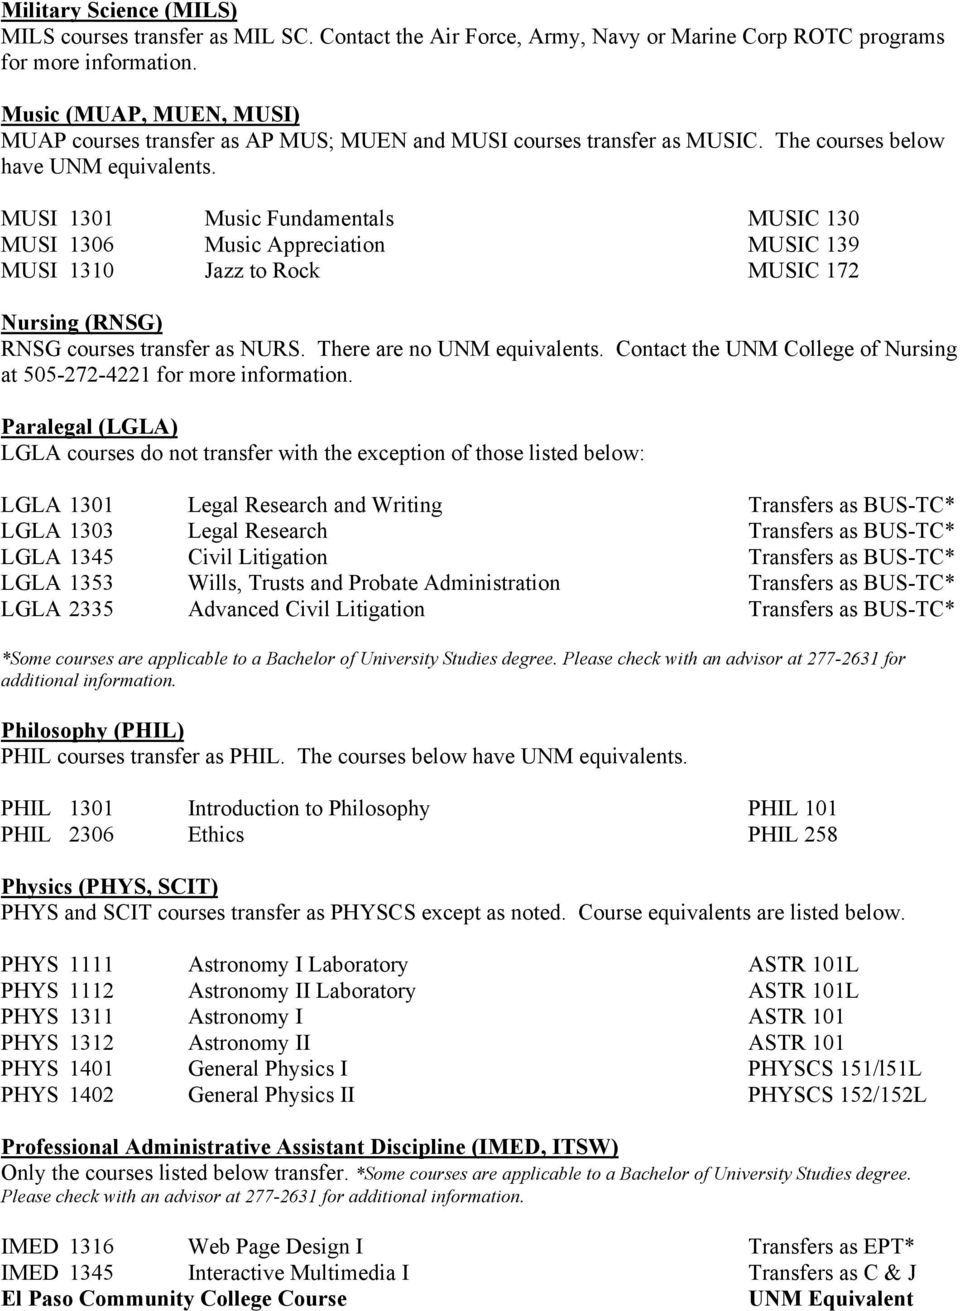 MUSI 1301 Music Fundamentals MUSIC 130 MUSI 1306 Music Appreciation MUSIC 139 MUSI 1310 Jazz to Rock MUSIC 172 Nursing (RNSG) RNSG courses transfer as NURS. There are no UNM equivalents.